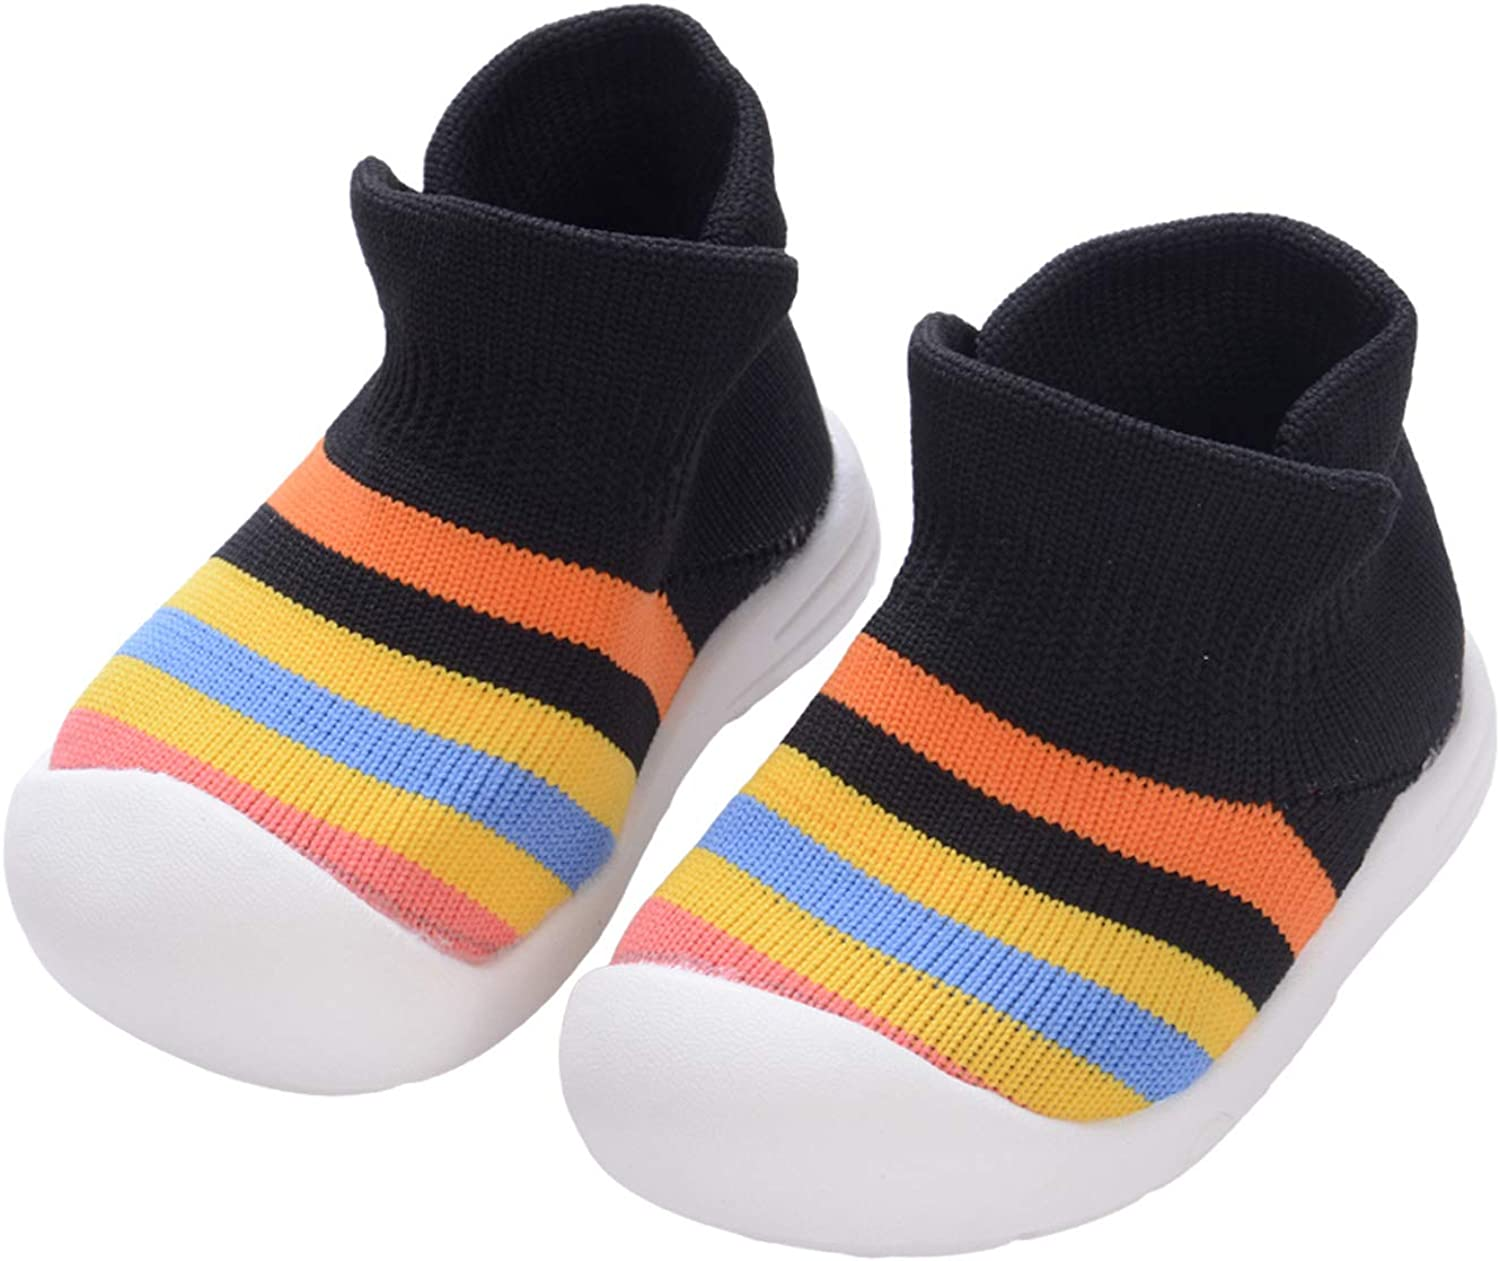 Aunavey Toddler Infant Baby Boys Girls Knit Shoes First Walkers Walking Shoes Anti-Slip Soft Slippers